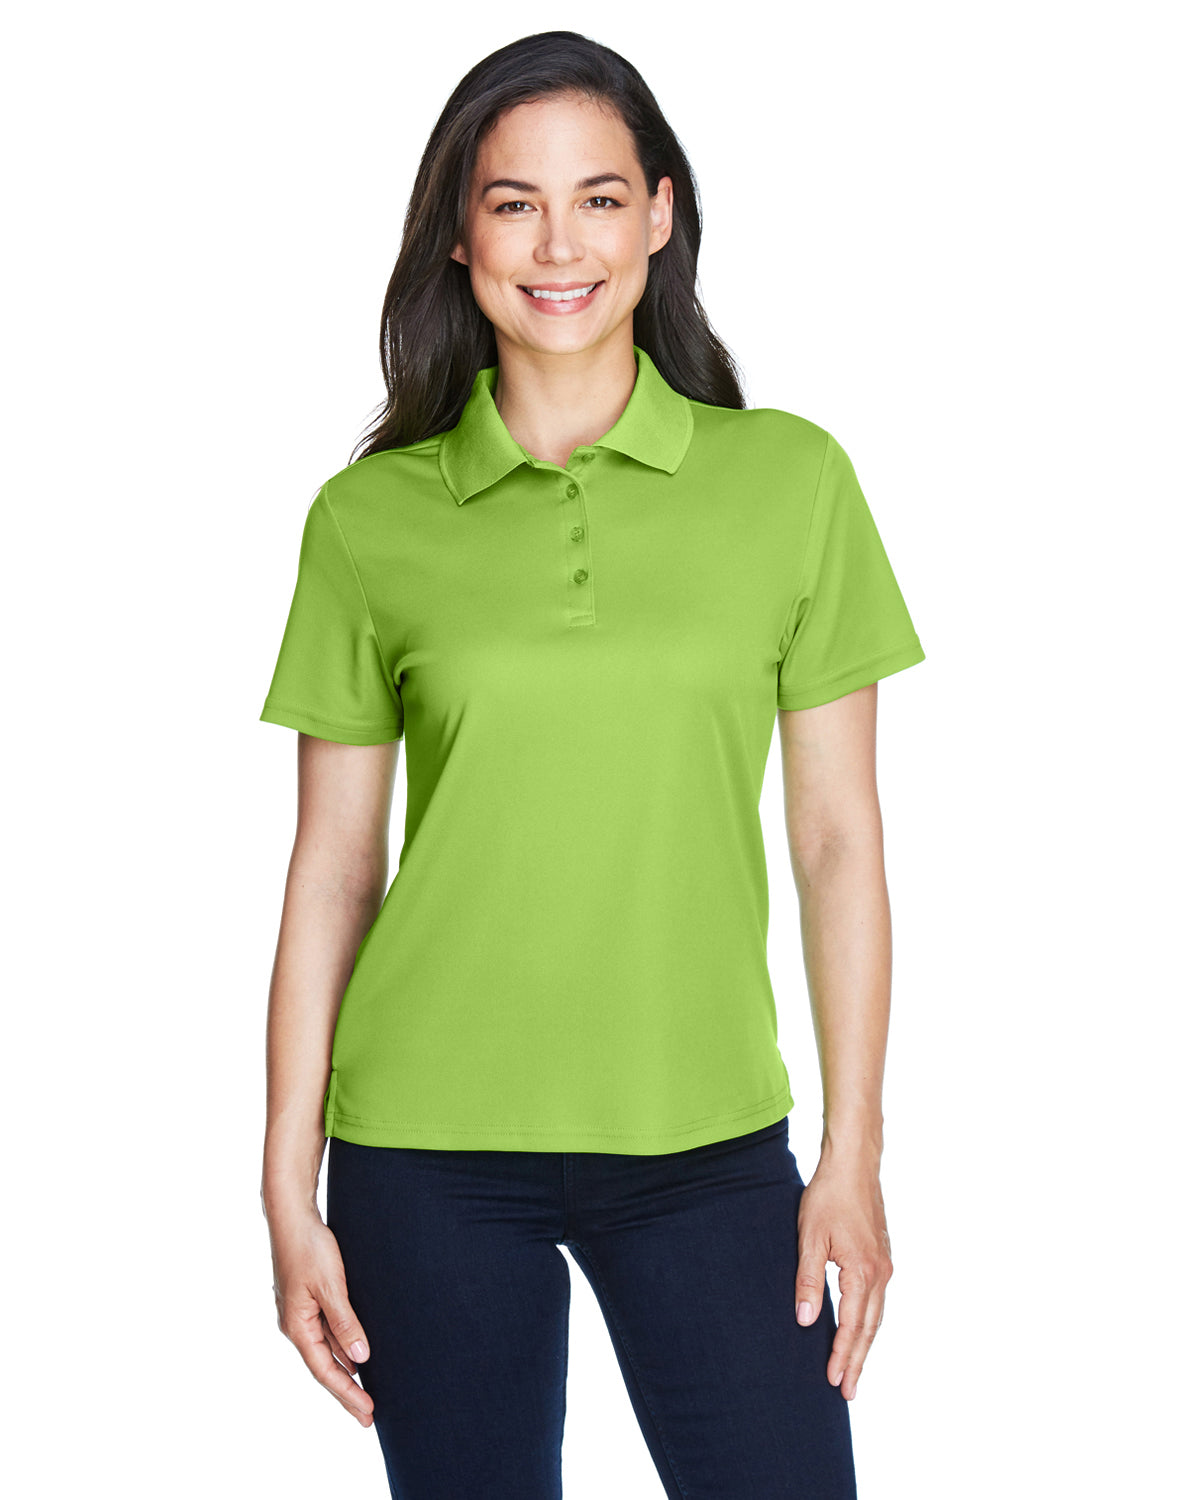 Core 365 Ladies Origin Performance Pique Polo